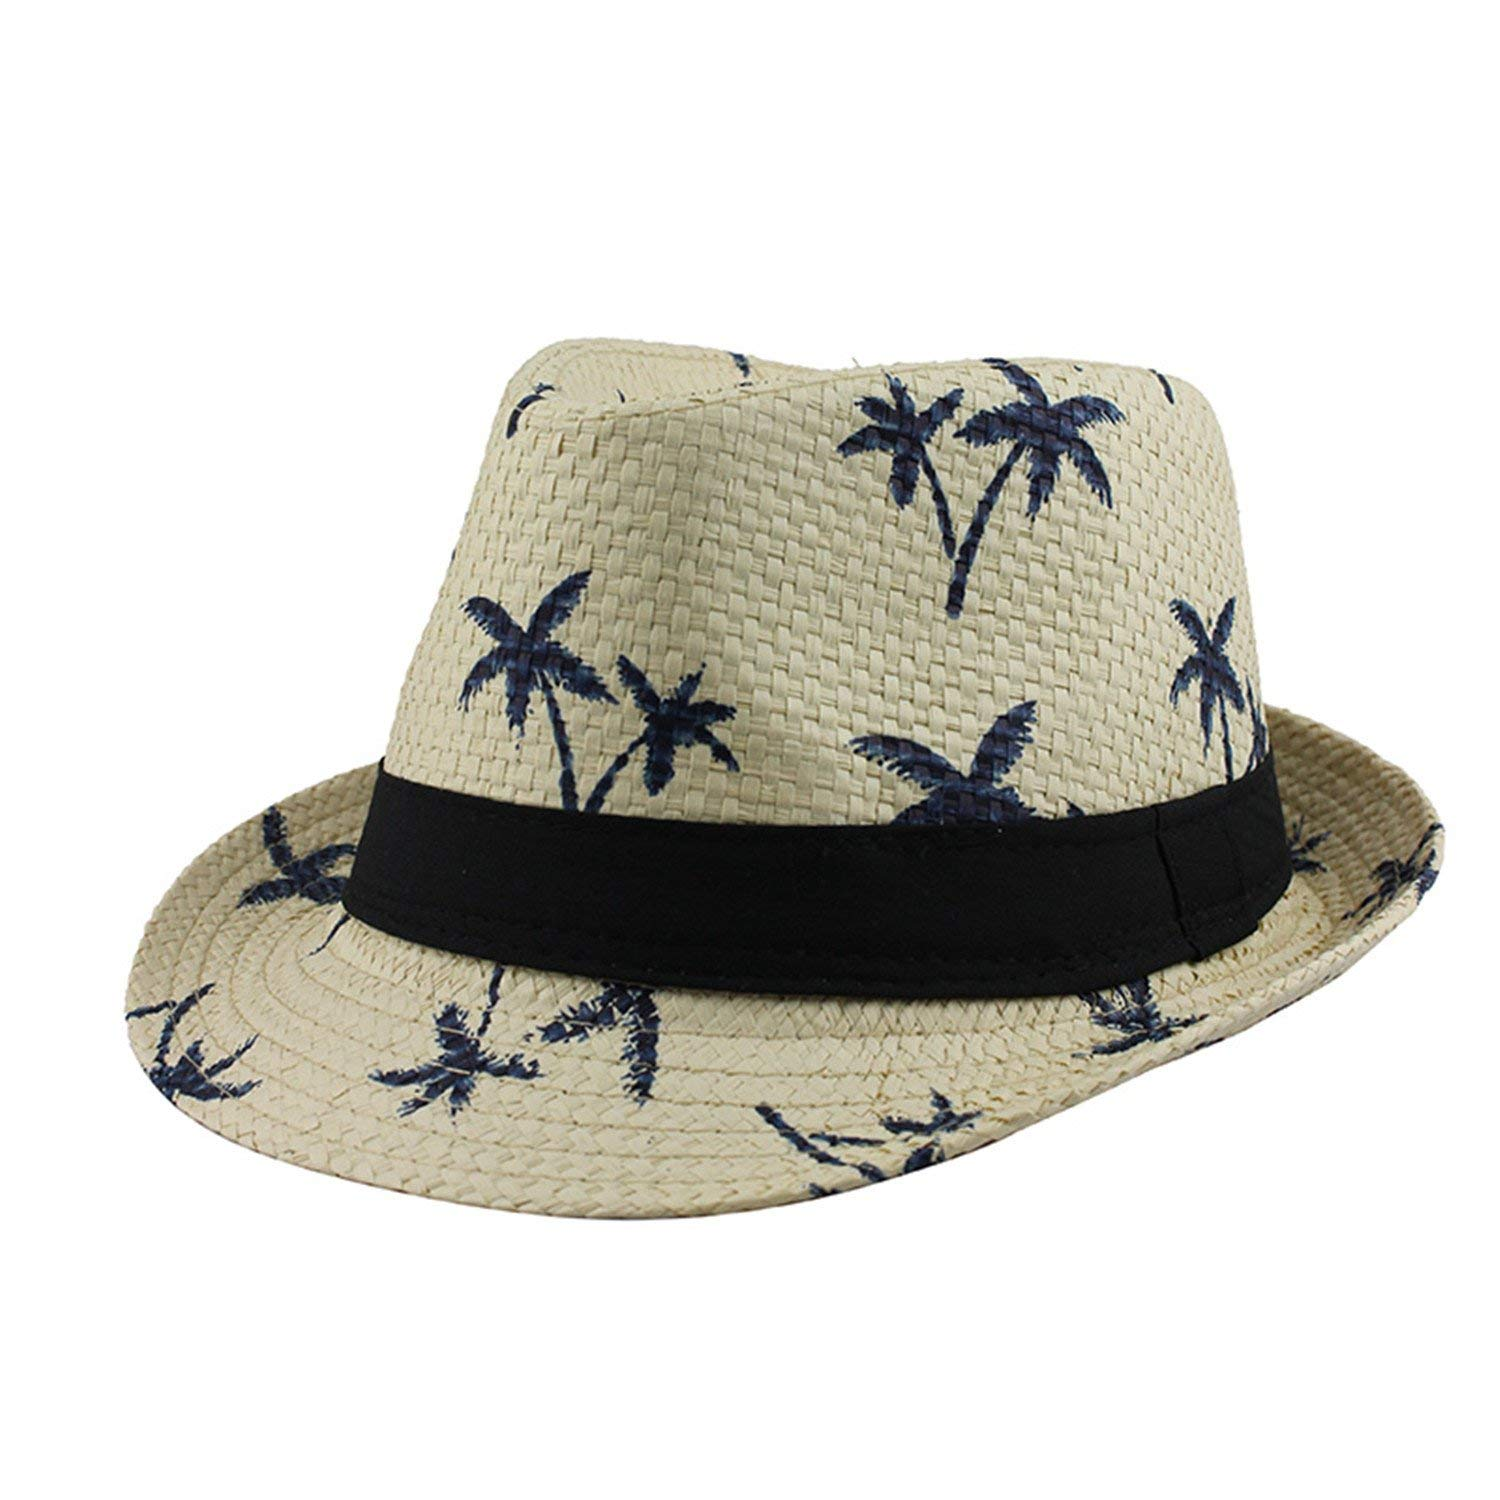 699e2c9c1e1 Get Quotations · Madehappy Casual Sun Hats Straw Men Beach Summer Fashion  Hats For WCaps Trilby Gangster Cap Jazz